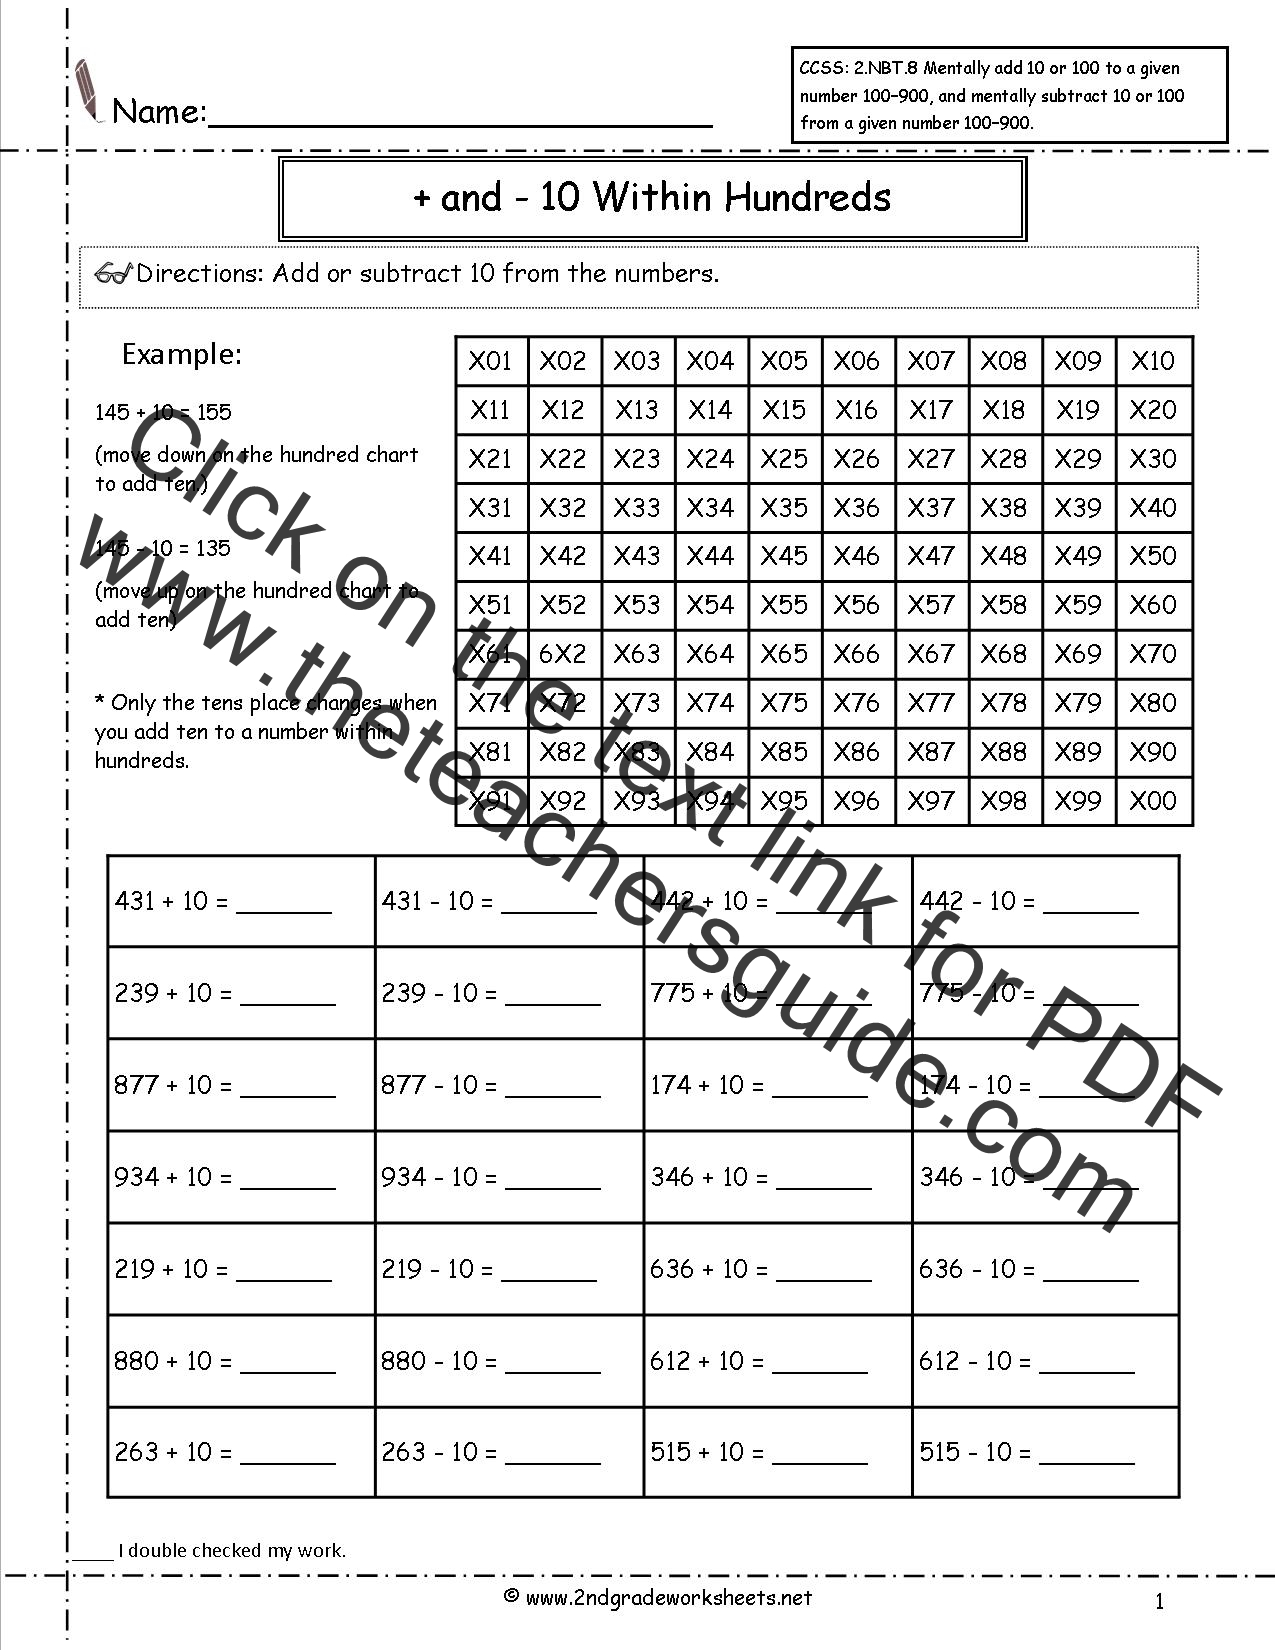 Ccss 2 Nbt 8 Worksheets Adding And Subtracting 10 And 100 From A Given Number